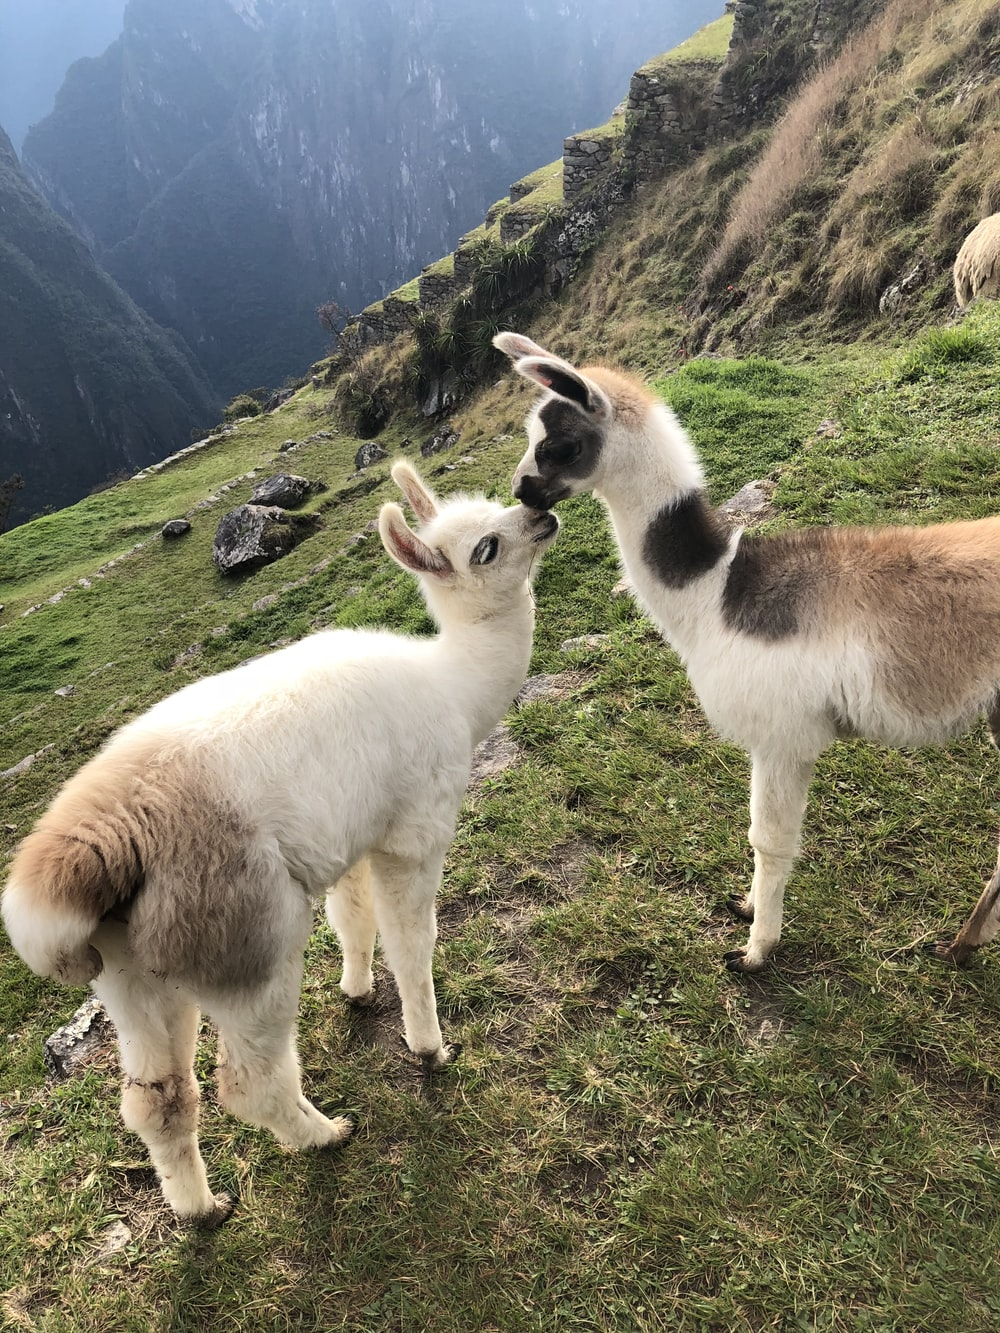 two brown and white young llamas on mountain top